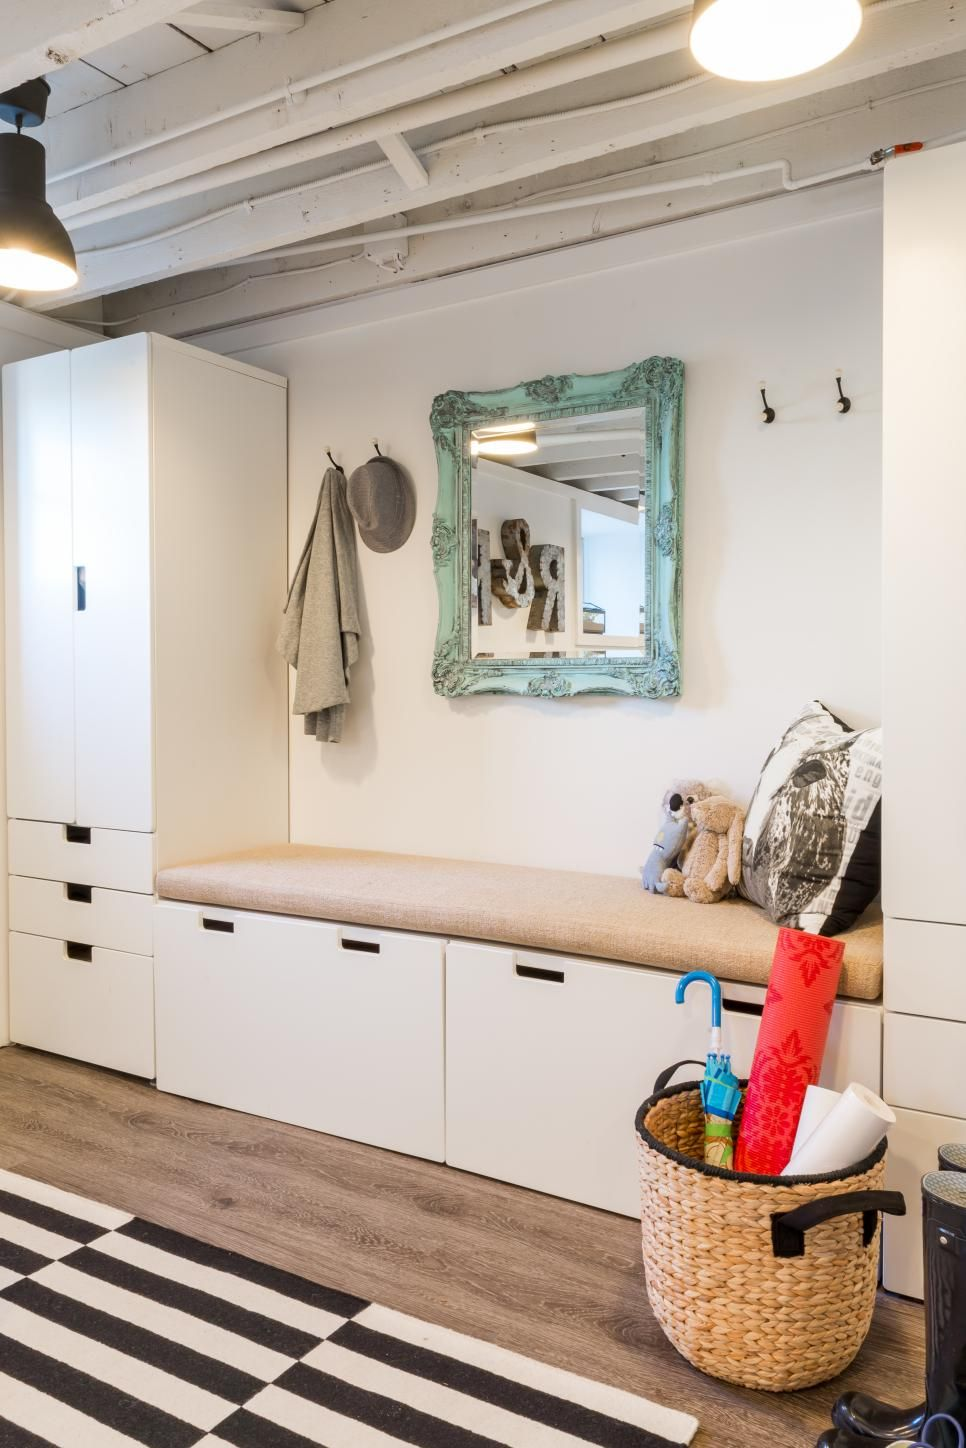 Designer Justine Sterling Transformed A Low Ceiling Basement Space In A  1920s Colonial With A Primary